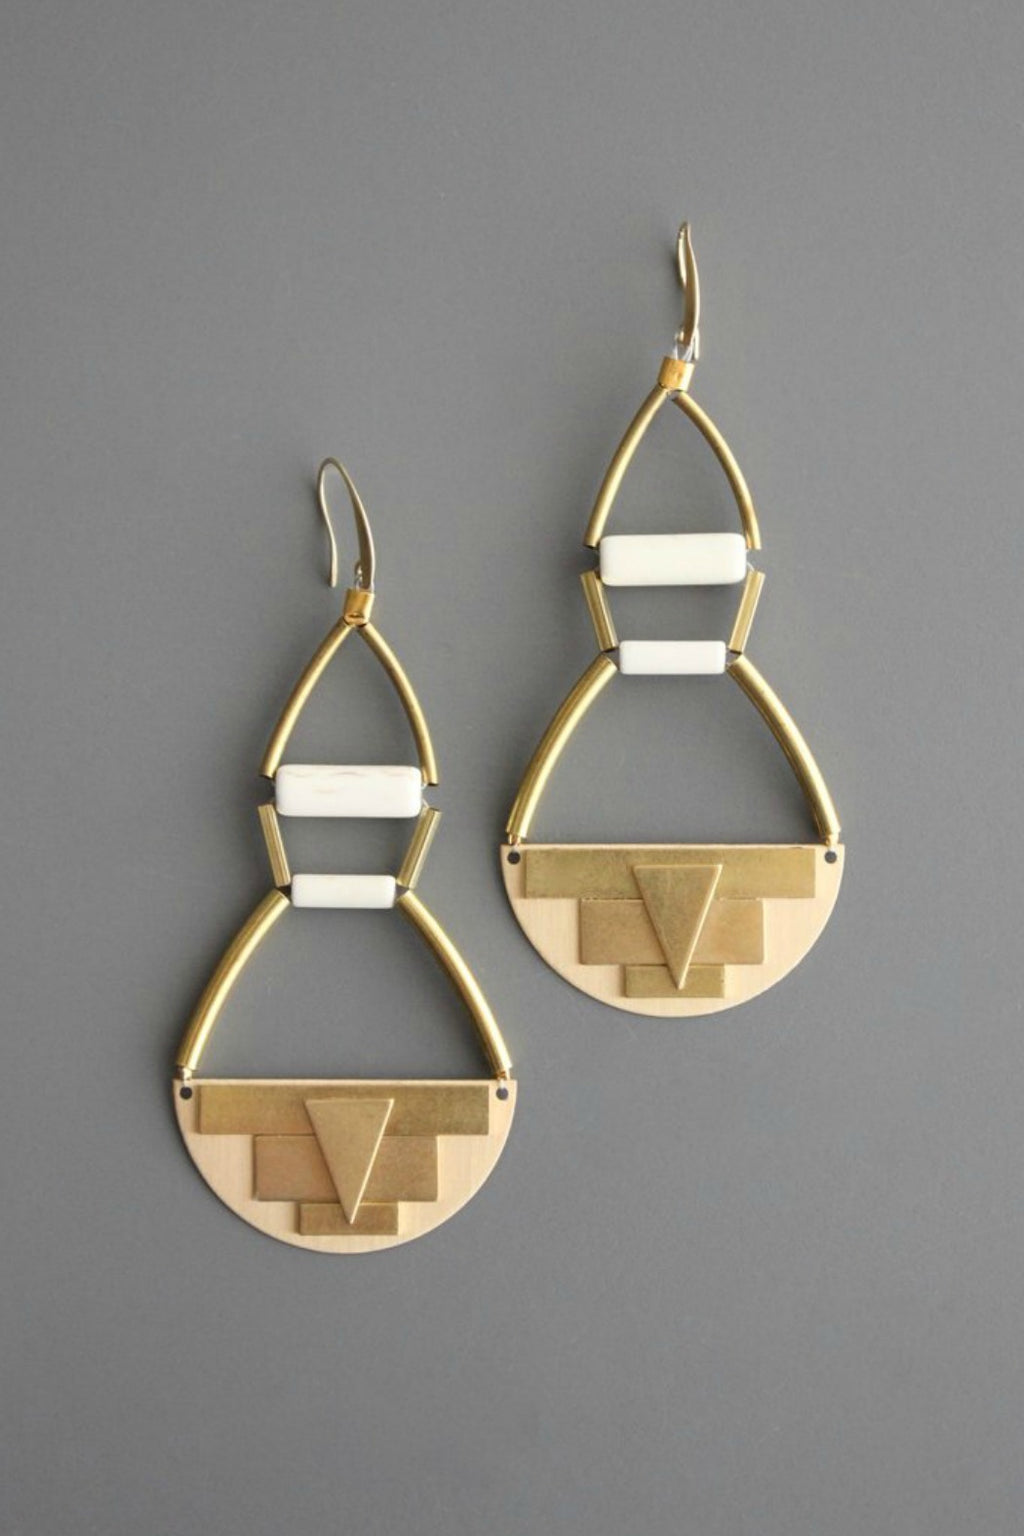 David Aubrey Brass & Magnesite Earrings